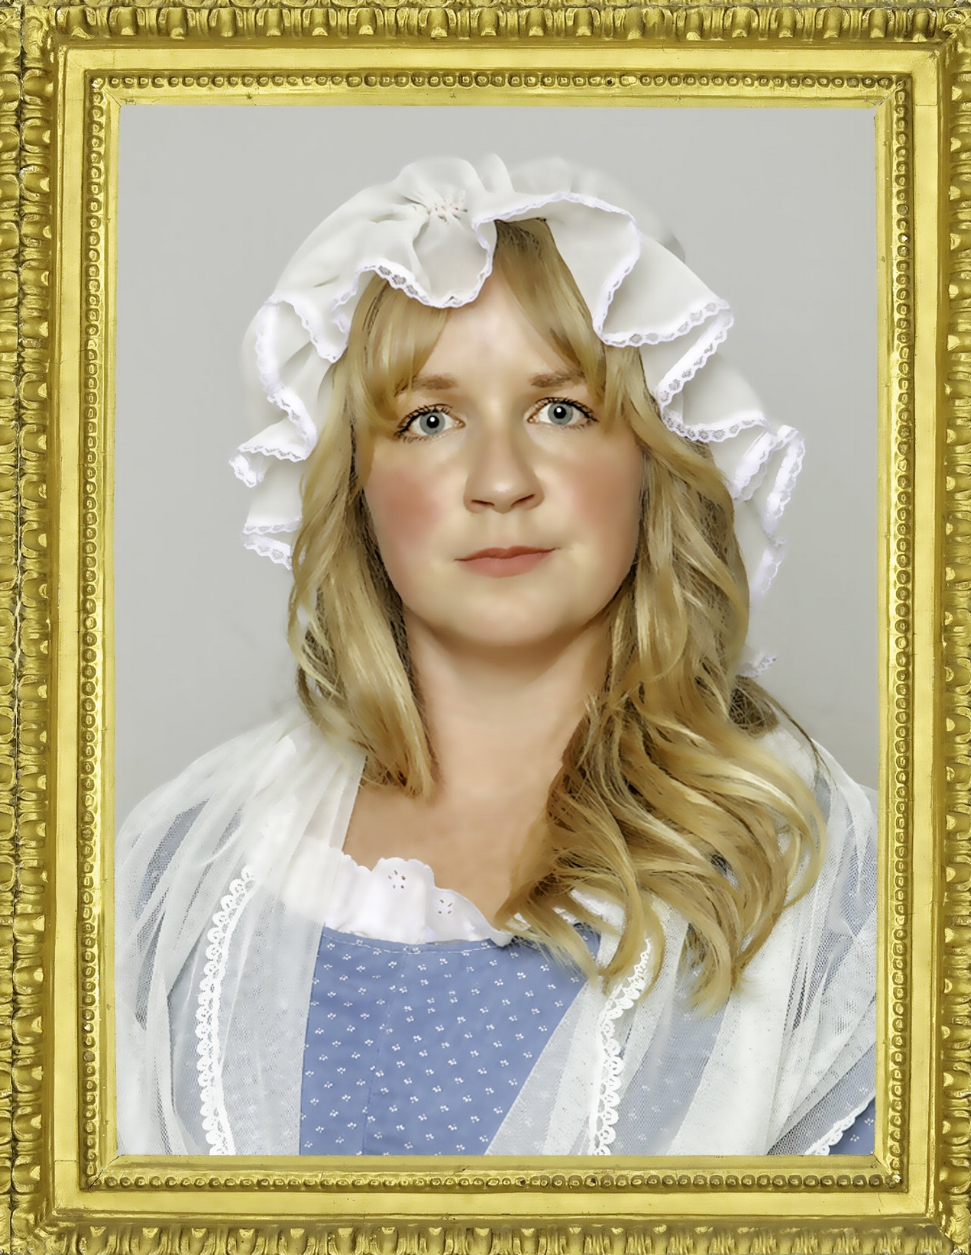 Heather Kellogg plays Charlotte Corday, The Angel of Assassins